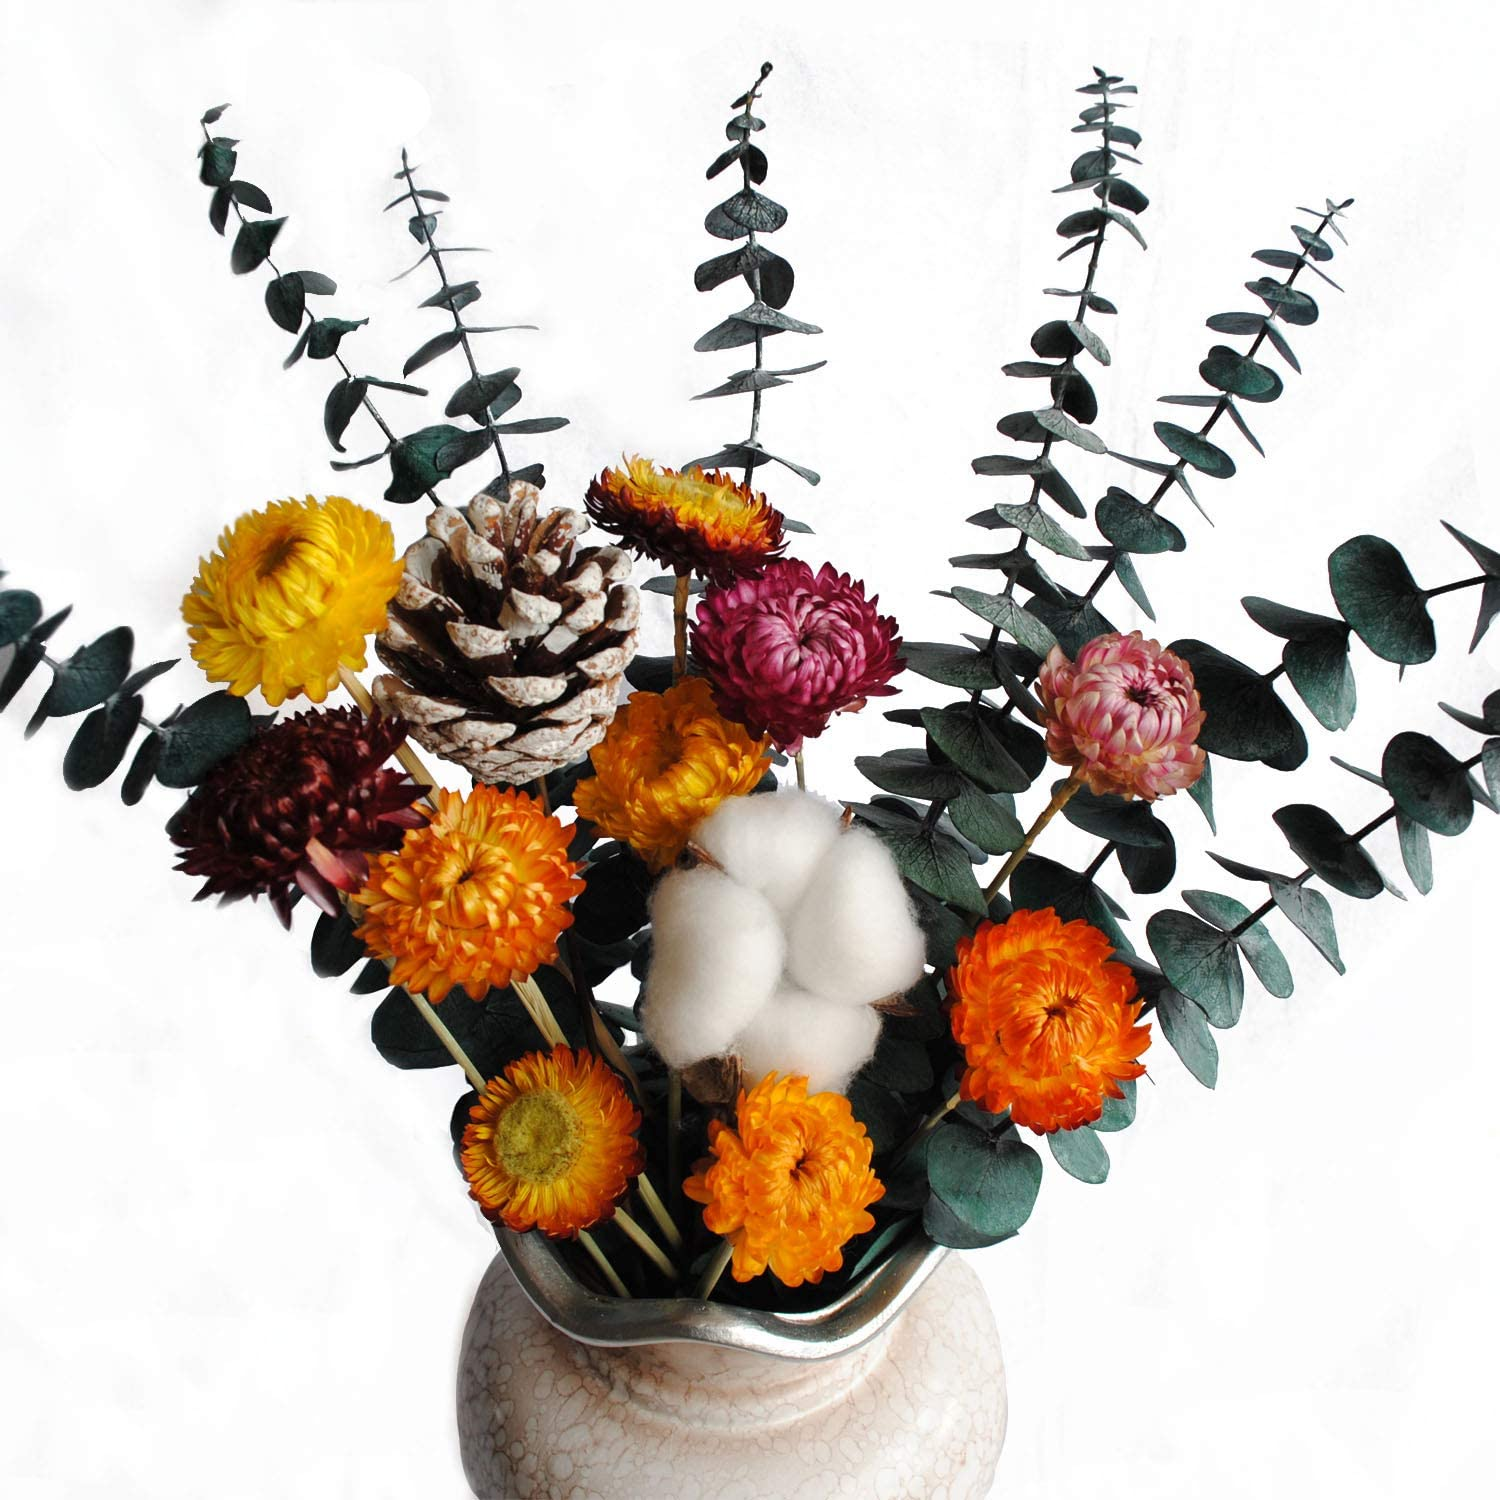 CAIYUN MANOR Eucalyptus Leaves Natural Dried Chrysanthemum Cotton Boll Dried Pine Cones DIY Combination Bouquet